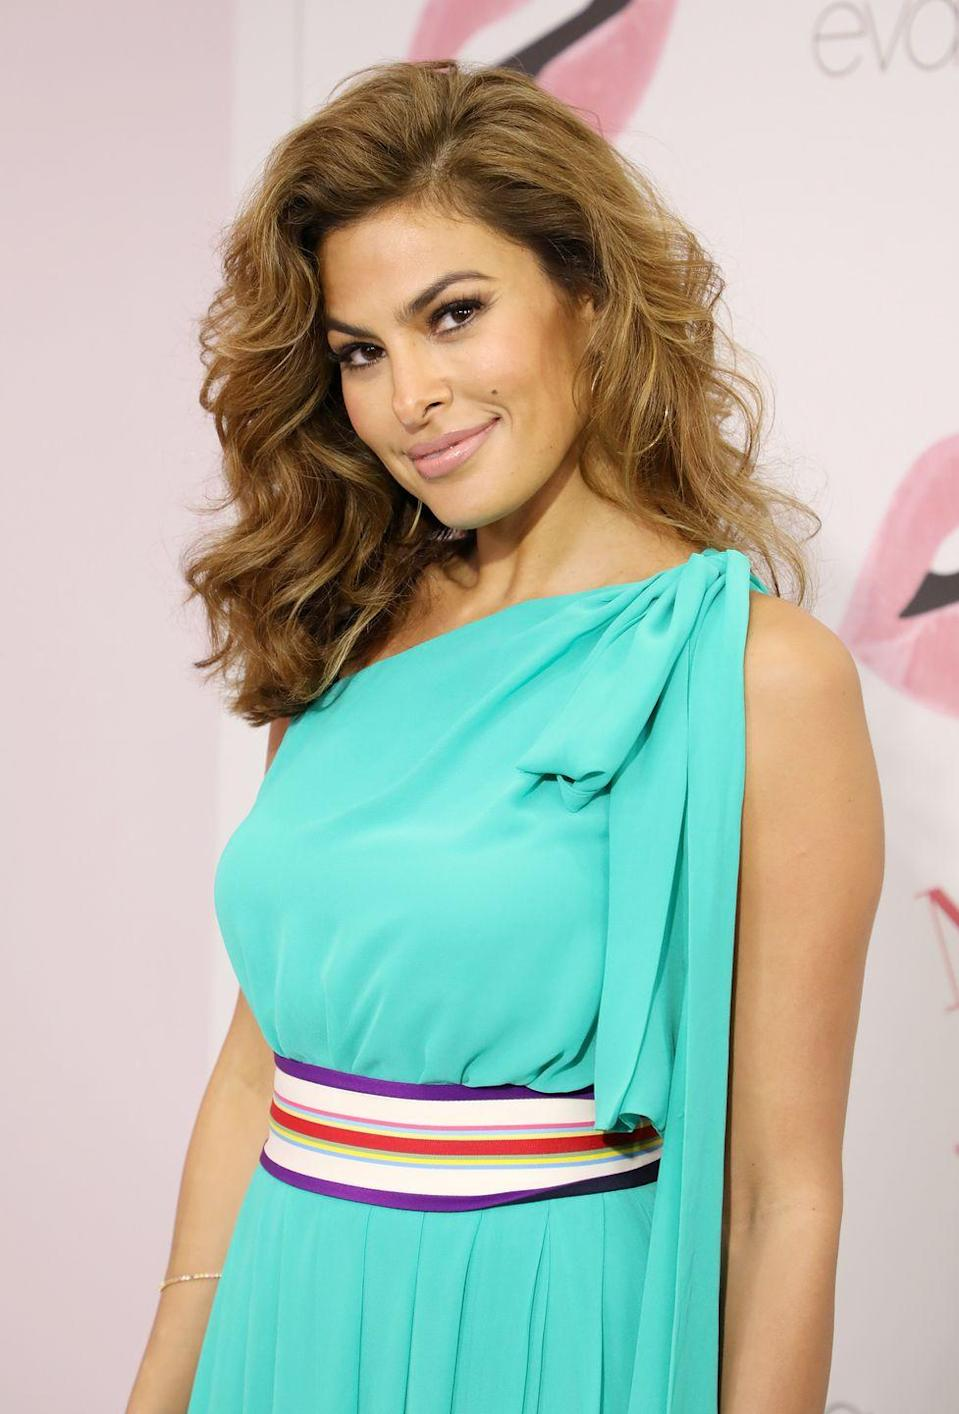 """<p>When she's off-season, Mendes <a href=""""https://www.shape.com/celebrities/videos/eva-mendes-shares-fitness-and-beauty-tips-keep-her-looking-so-damn-glowy"""" rel=""""nofollow noopener"""" target=""""_blank"""" data-ylk=""""slk:takes it a little easier"""" class=""""link rapid-noclick-resp"""">takes it a little easier</a> and works out about three days a week. But in the summer or when she's preparing for a movie or event, that number goes up to five!</p>"""